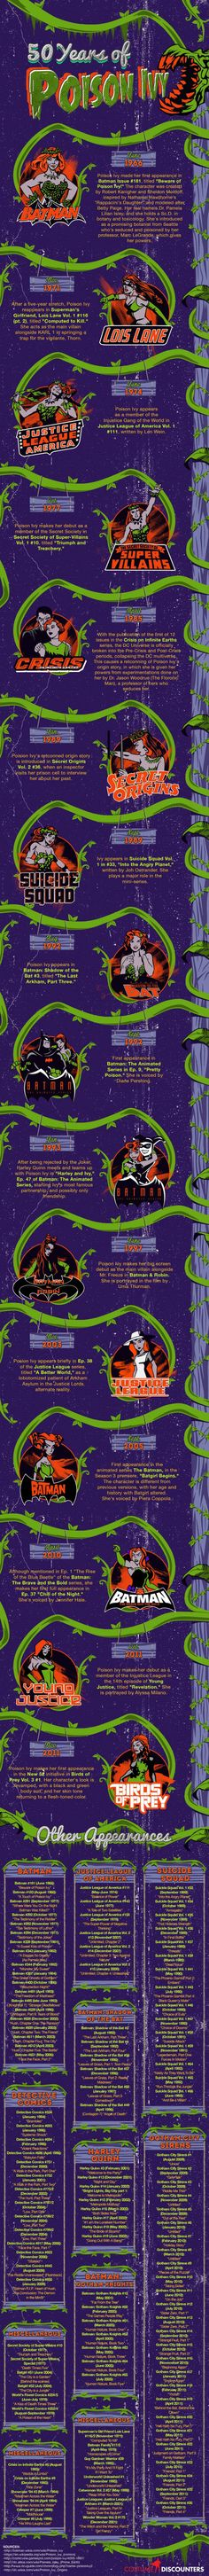 infographic-for-poison-ivy-timeline-1300x-min